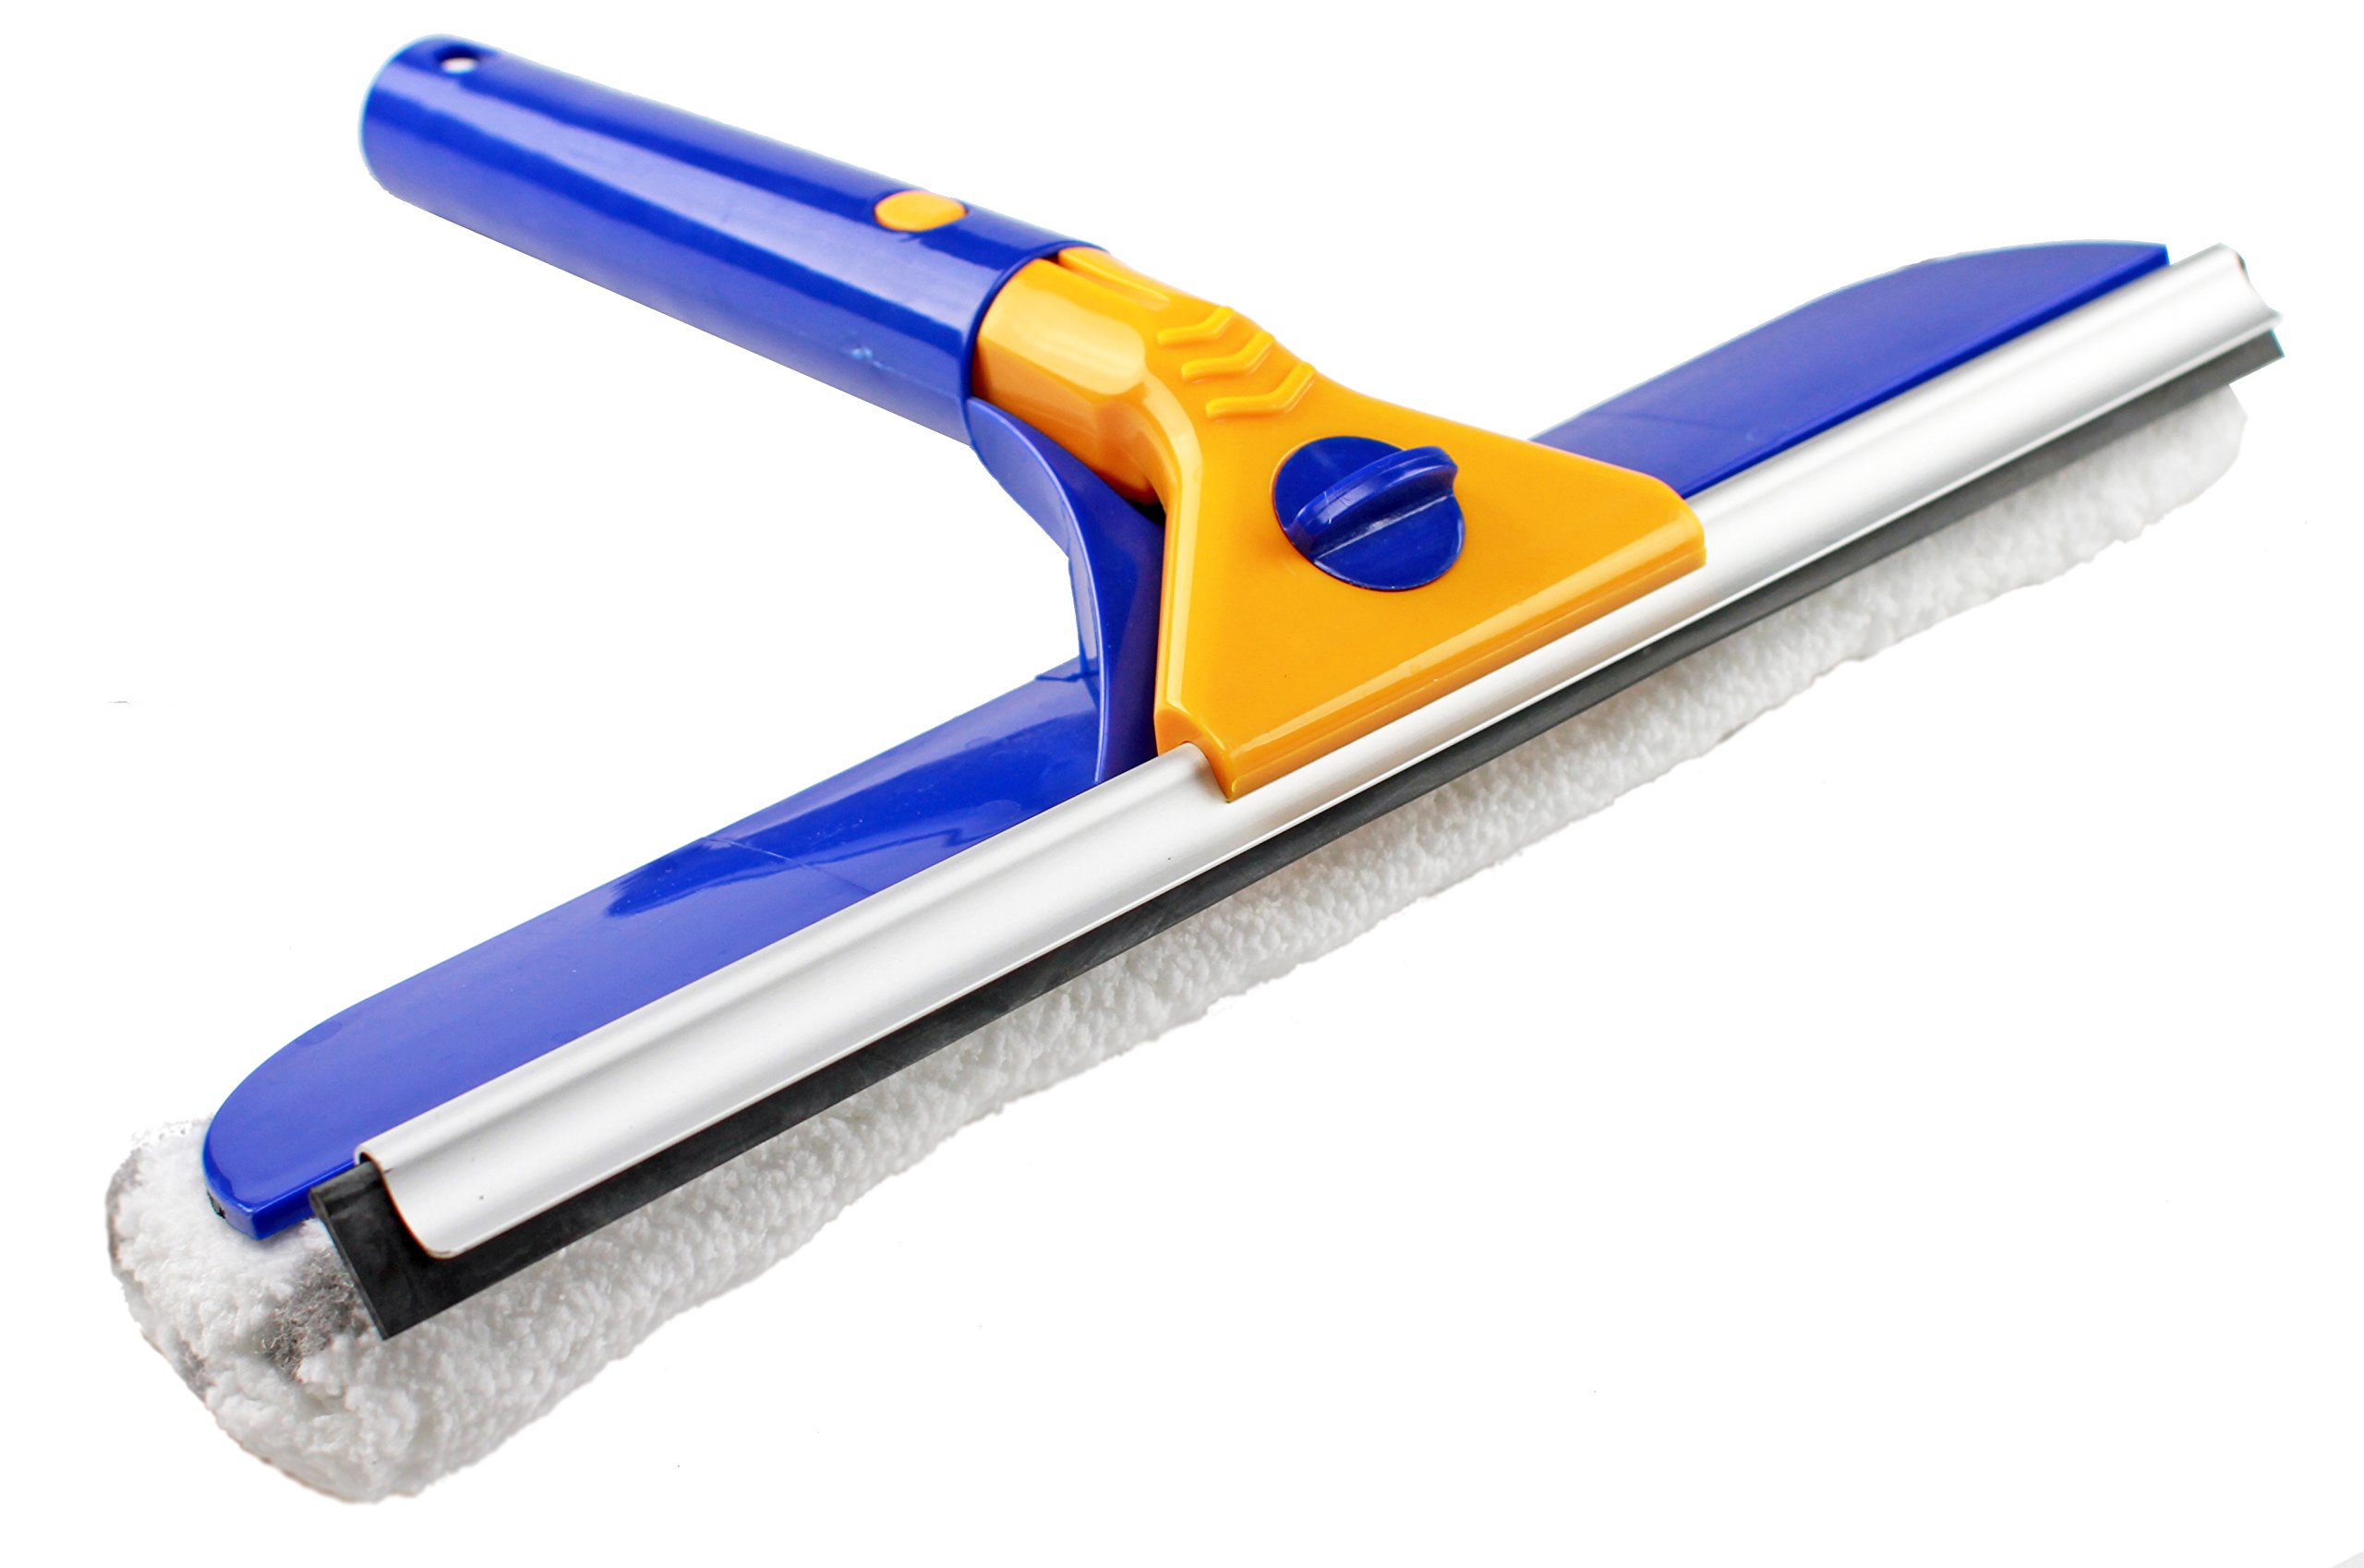 Jet Clean Window Cleaning Washing Kit Squeegee